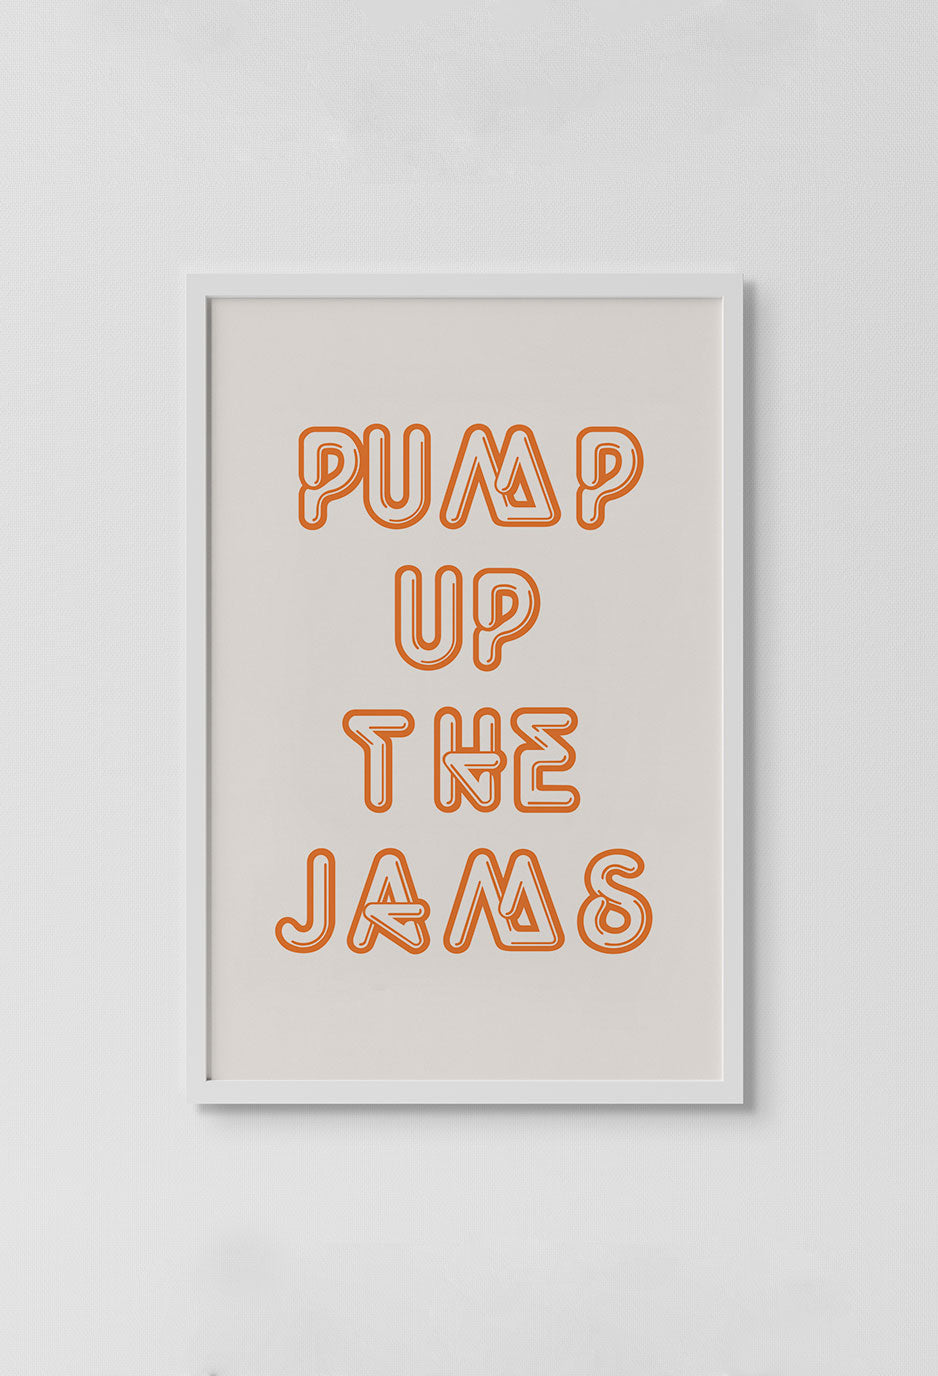 image of words that read pump up the jams in orange text with off white background in white frame on white wall.